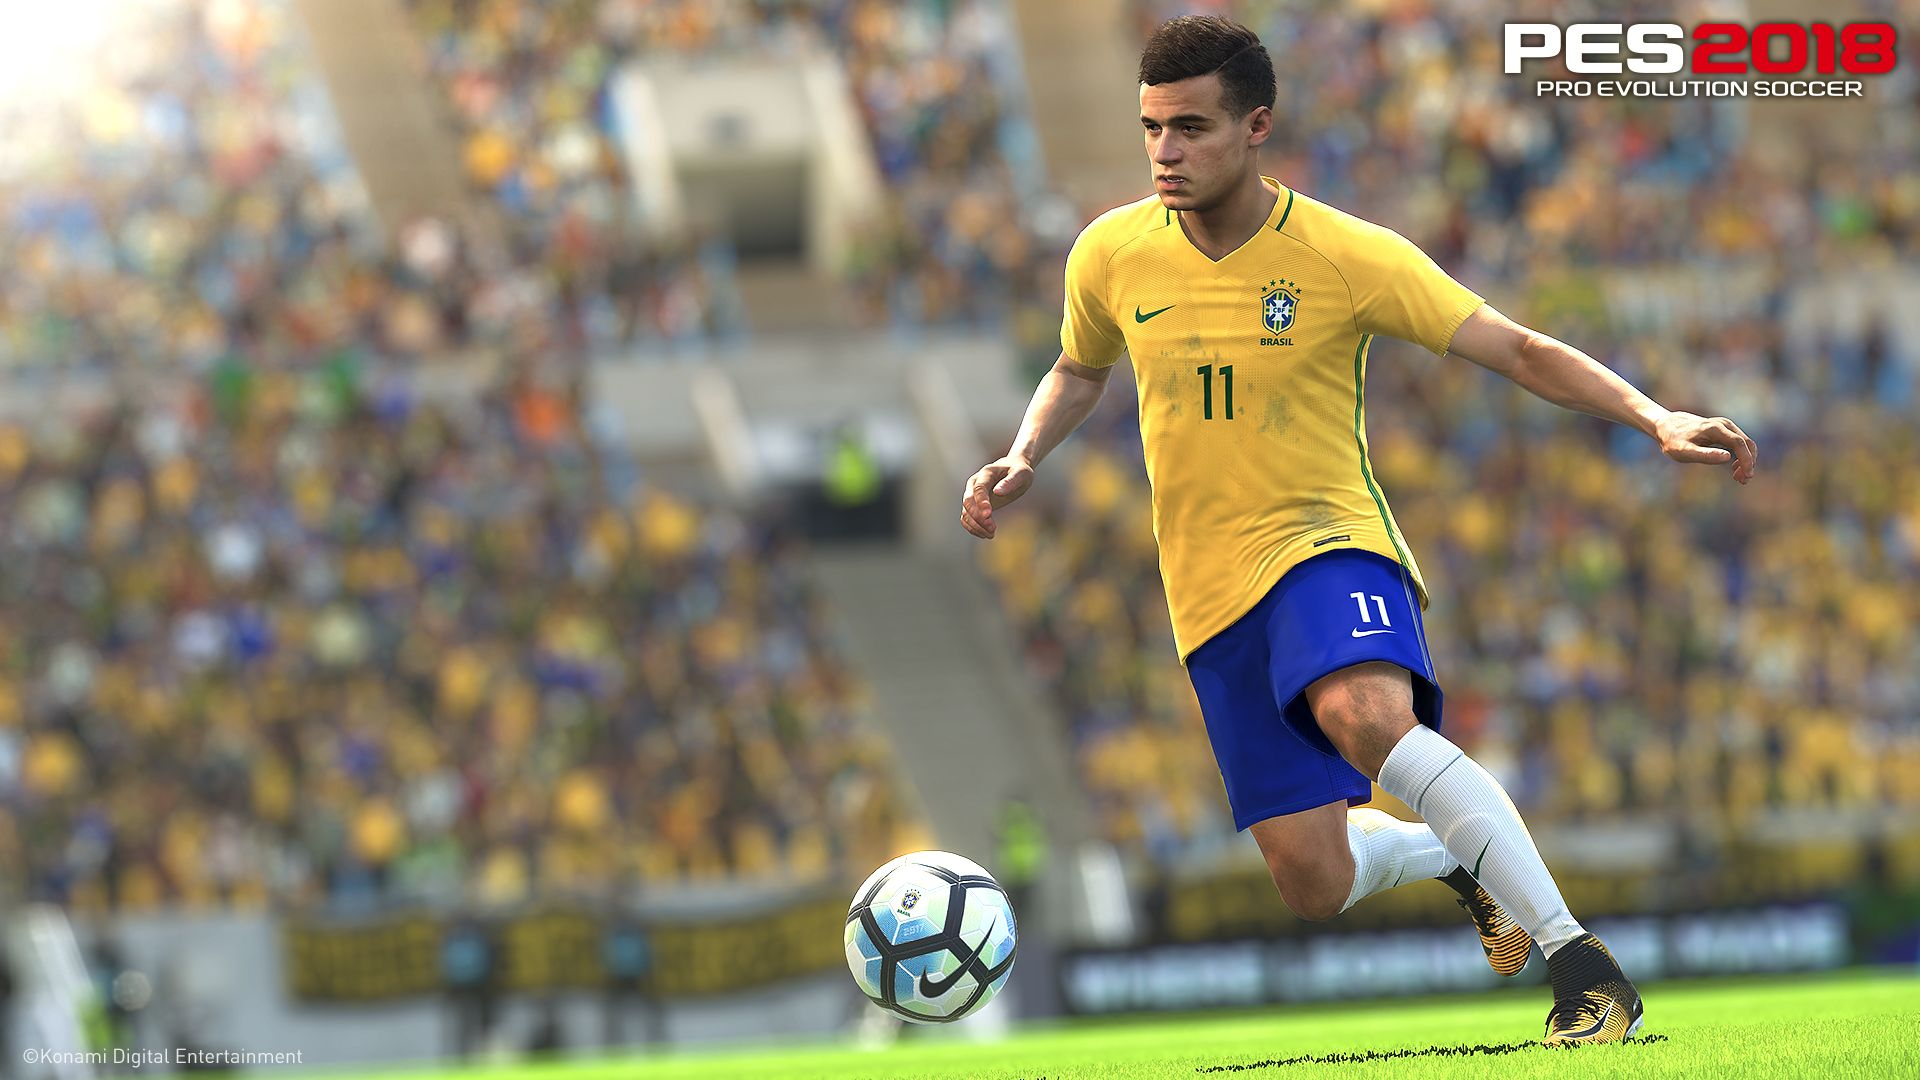 Pes 2018 Fr Ps4 Nur 699 Euro Gamerscheck Pro Evolution Soccer 18 02